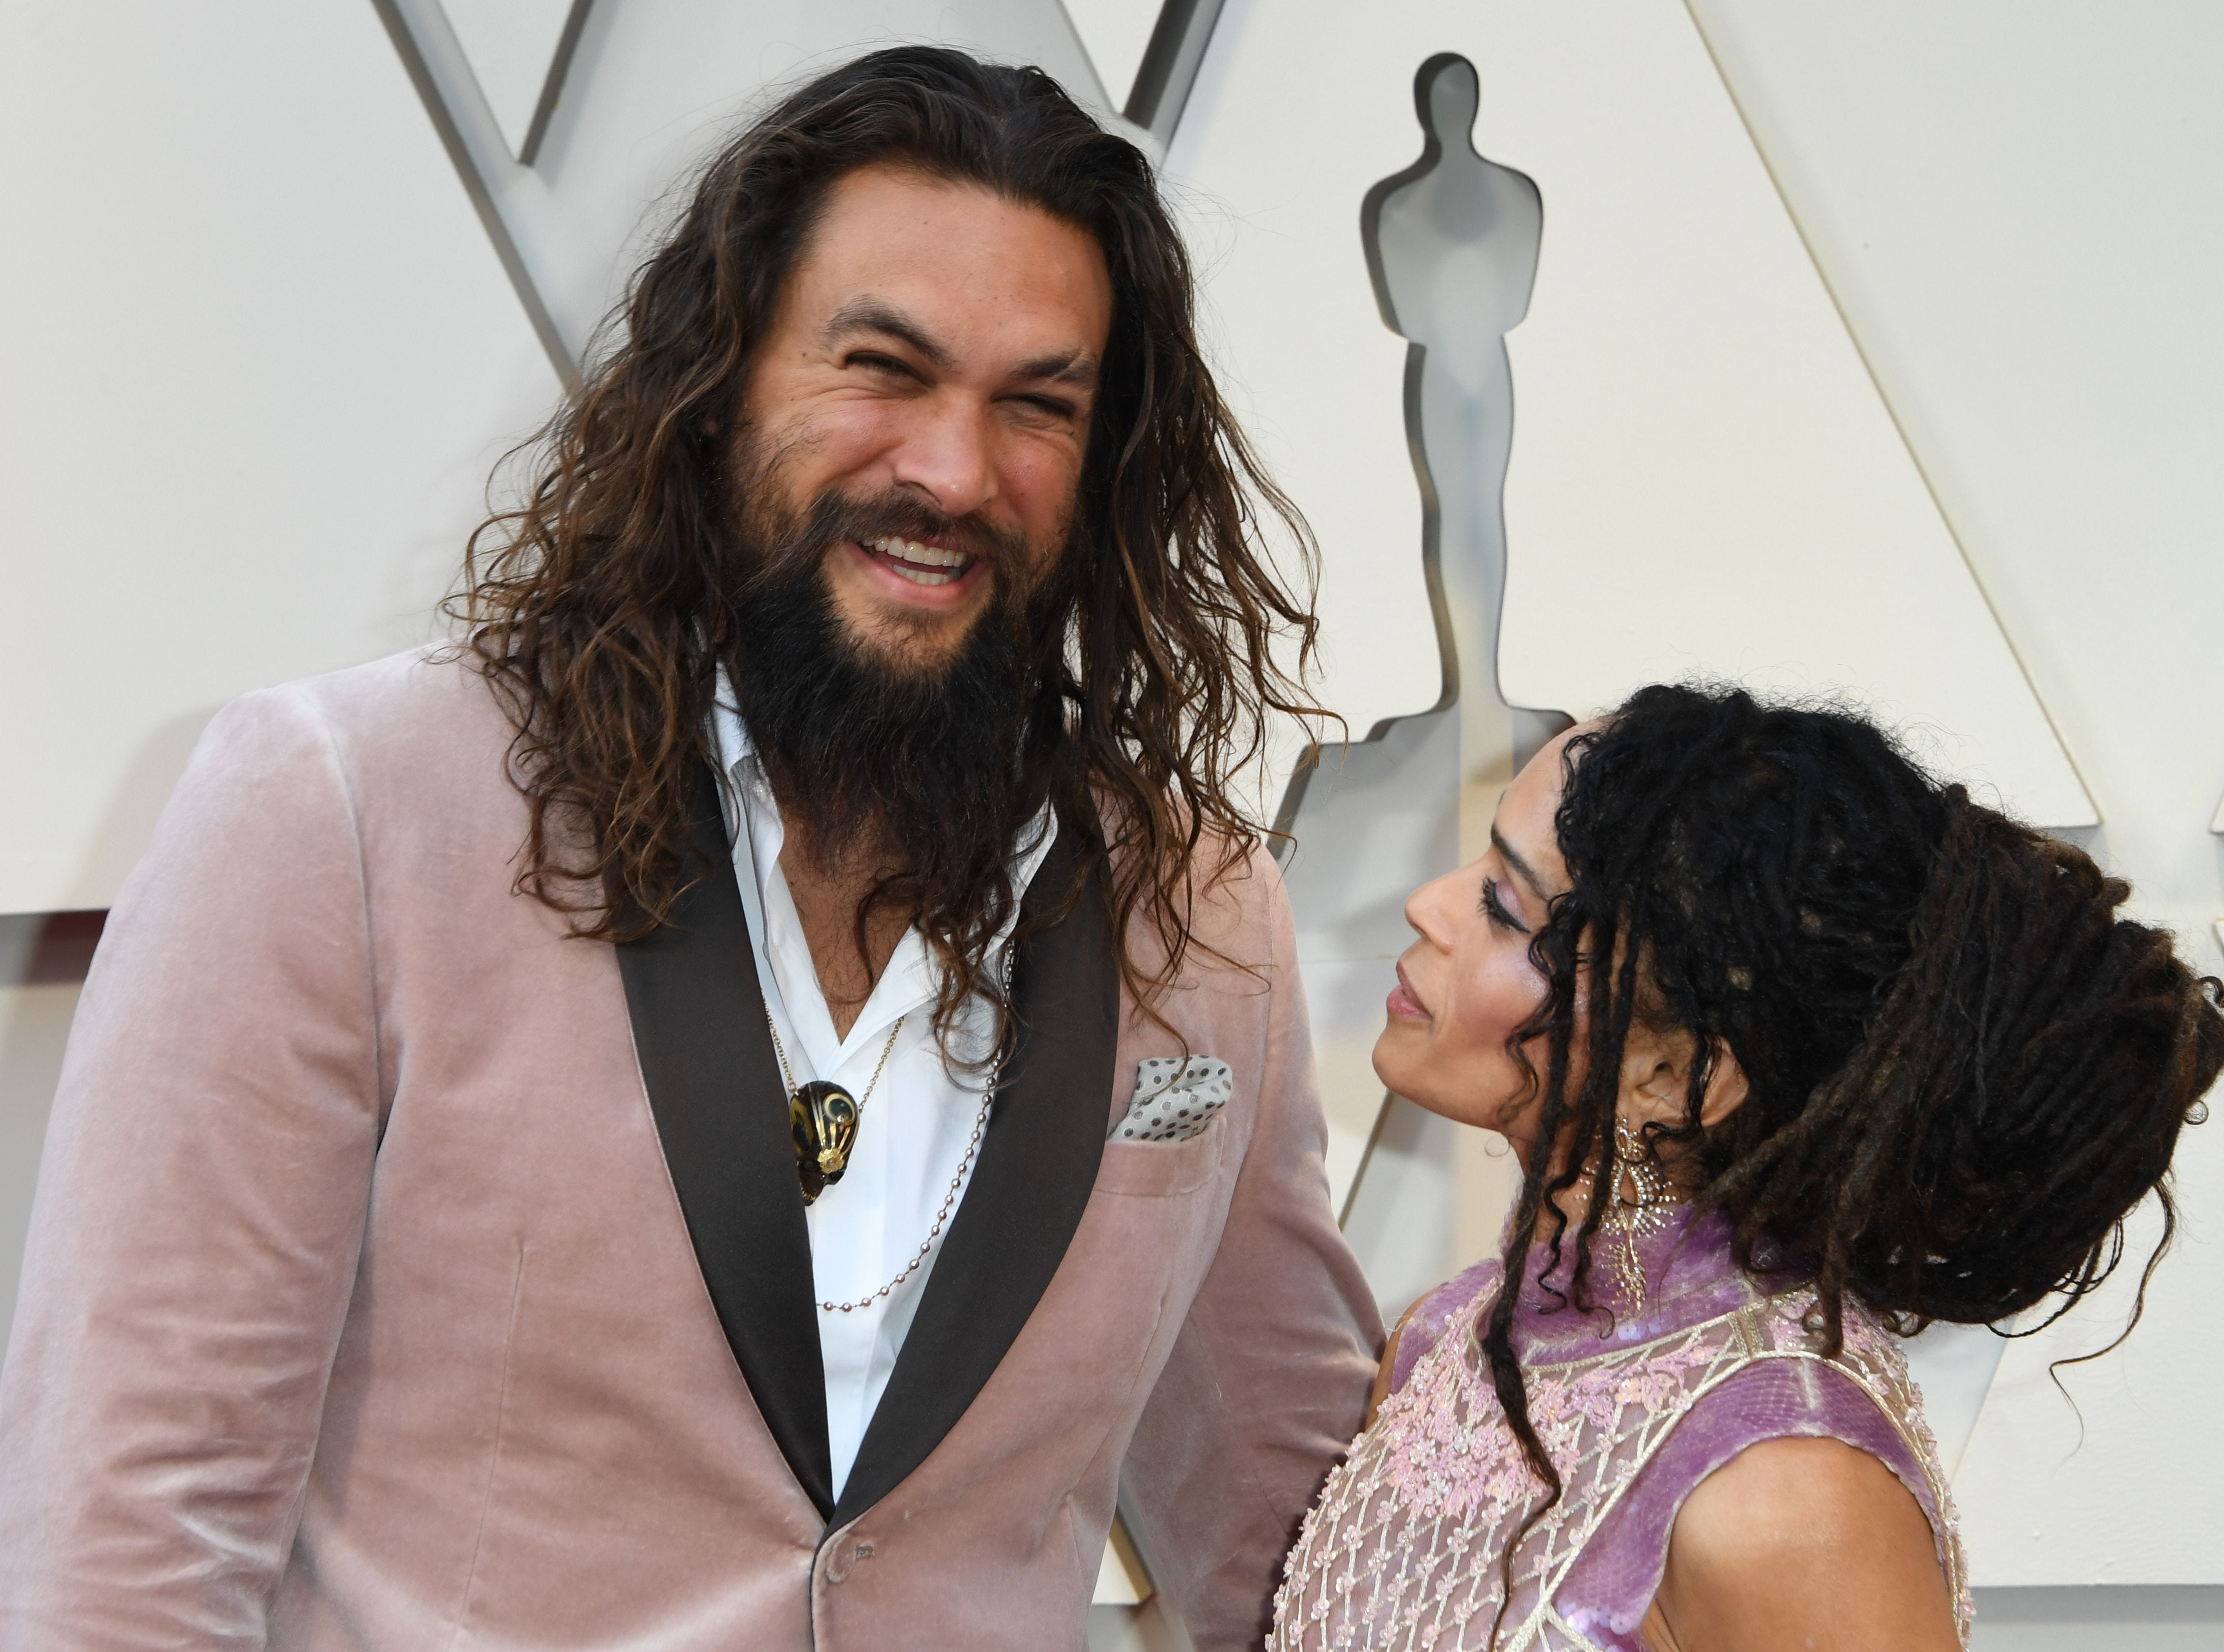 Actor Jason Momoa and wife actress Lisa Bonet arrive for the 91st Annual Academy Awards at the Dolby Theatre in Hollywood, California on February 24, 2019.